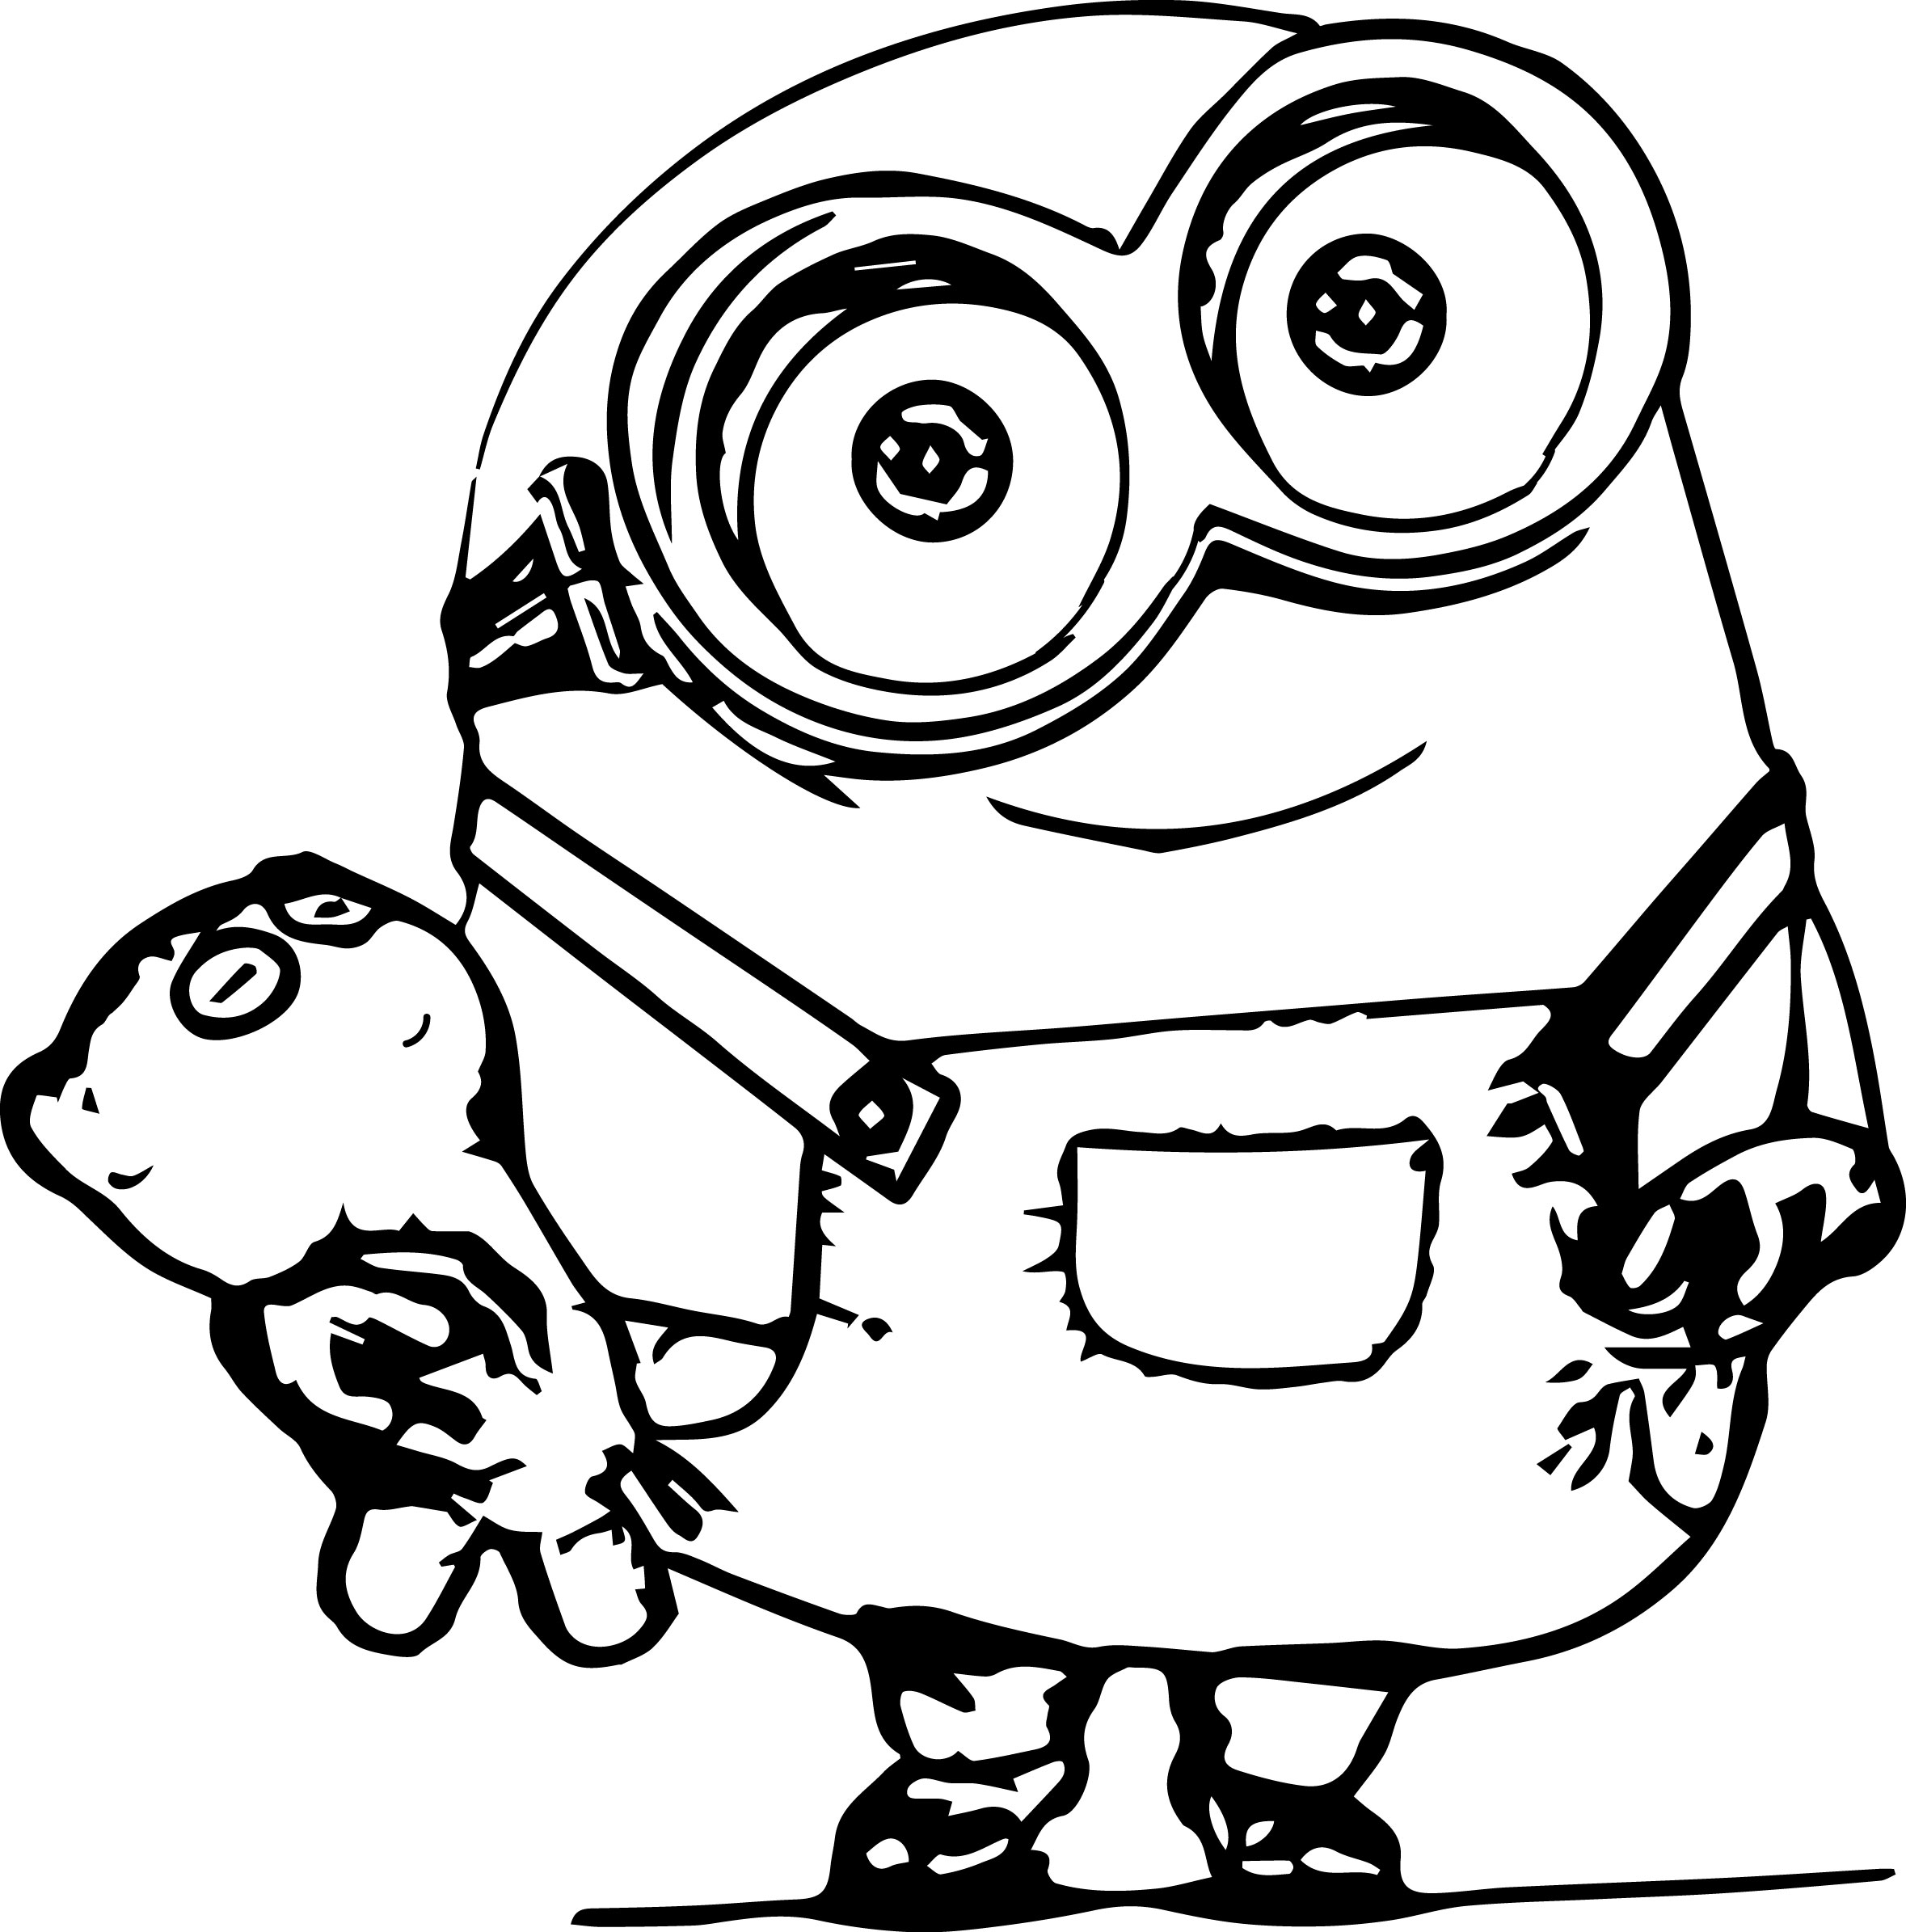 minion coloring page - Coloring Paages